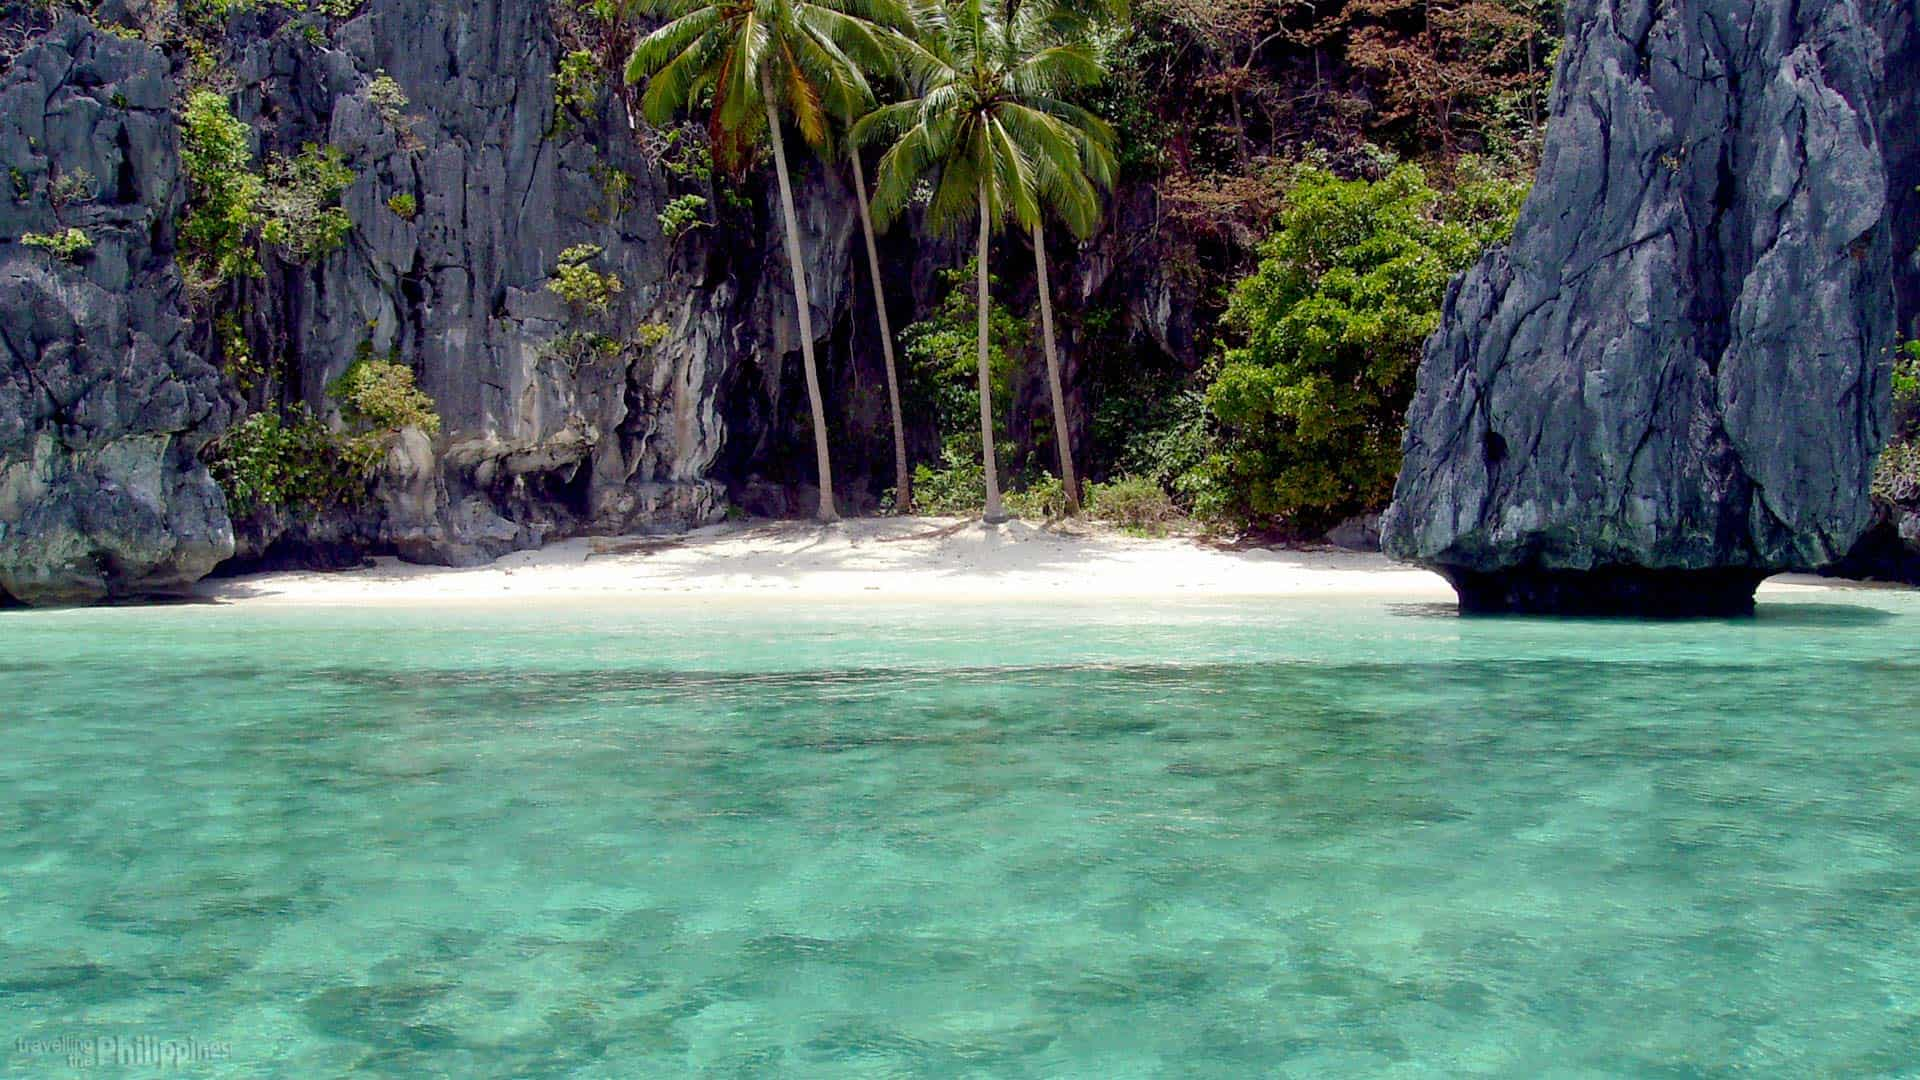 el-nido-philippines-beach-palawan-wise-travellers